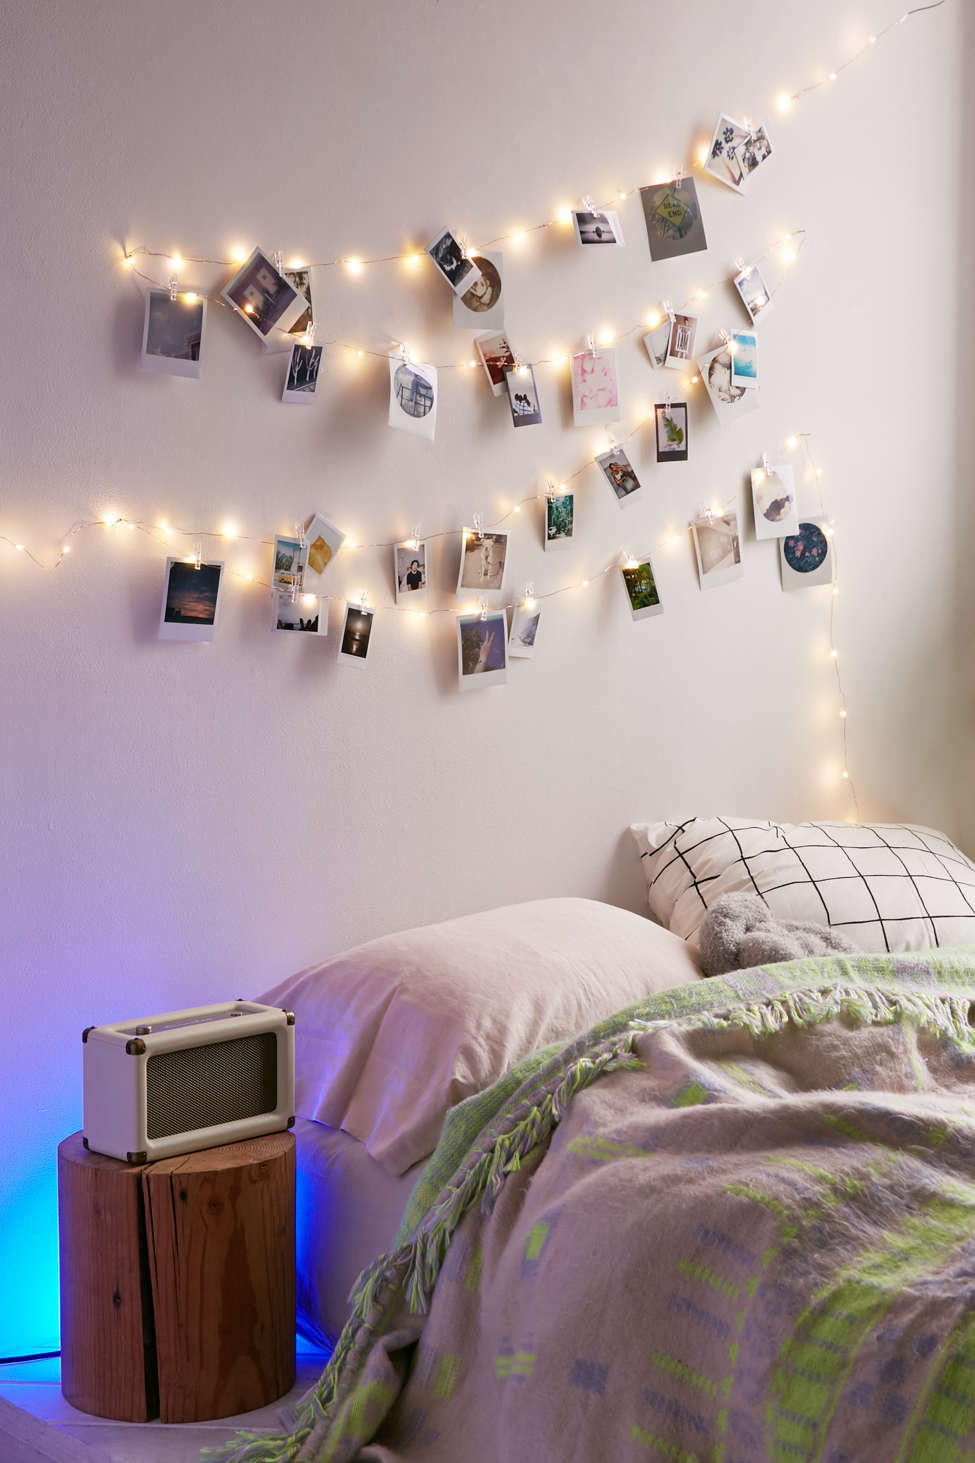 How To Hang String Picture Lights In Dorm Room